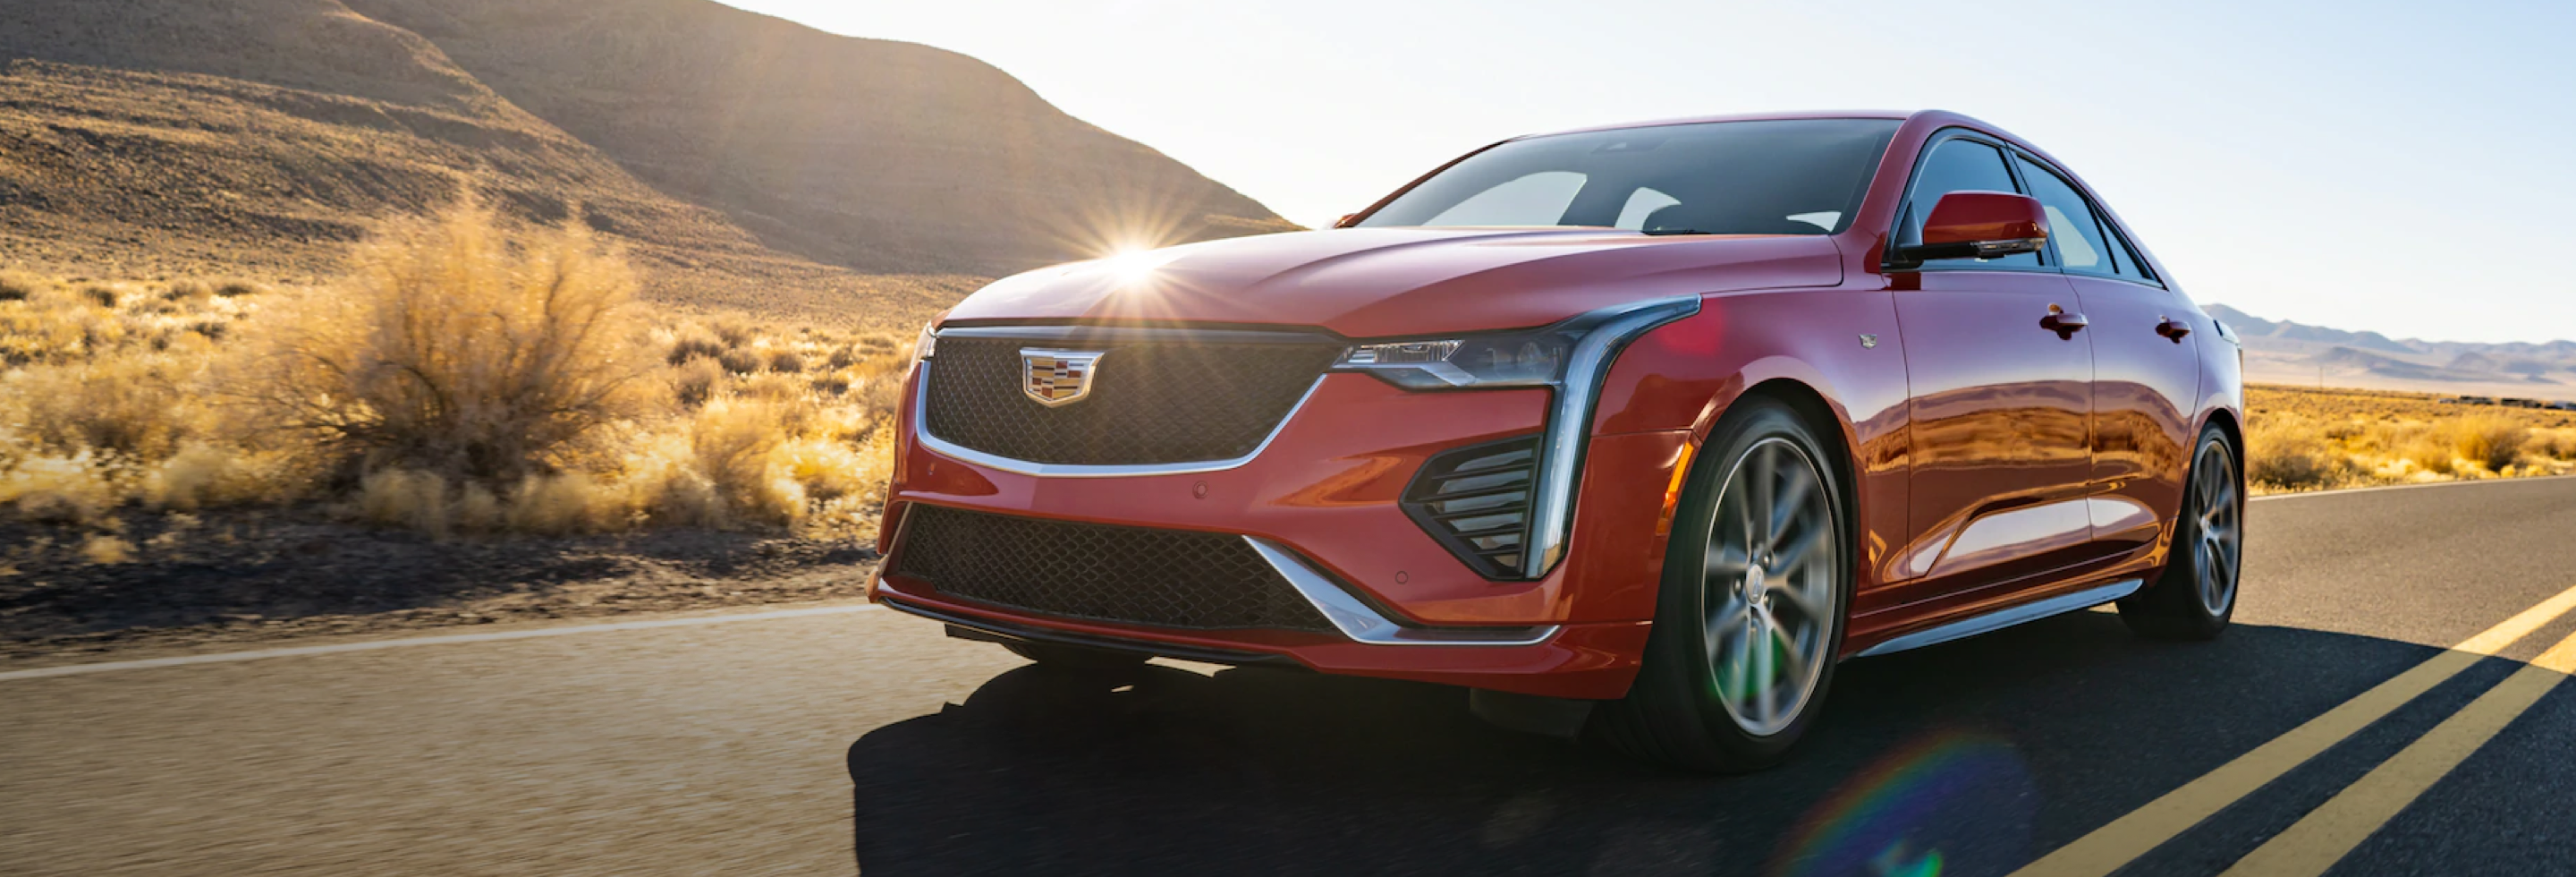 2021 Cadillac CT4 Red Front Angle View